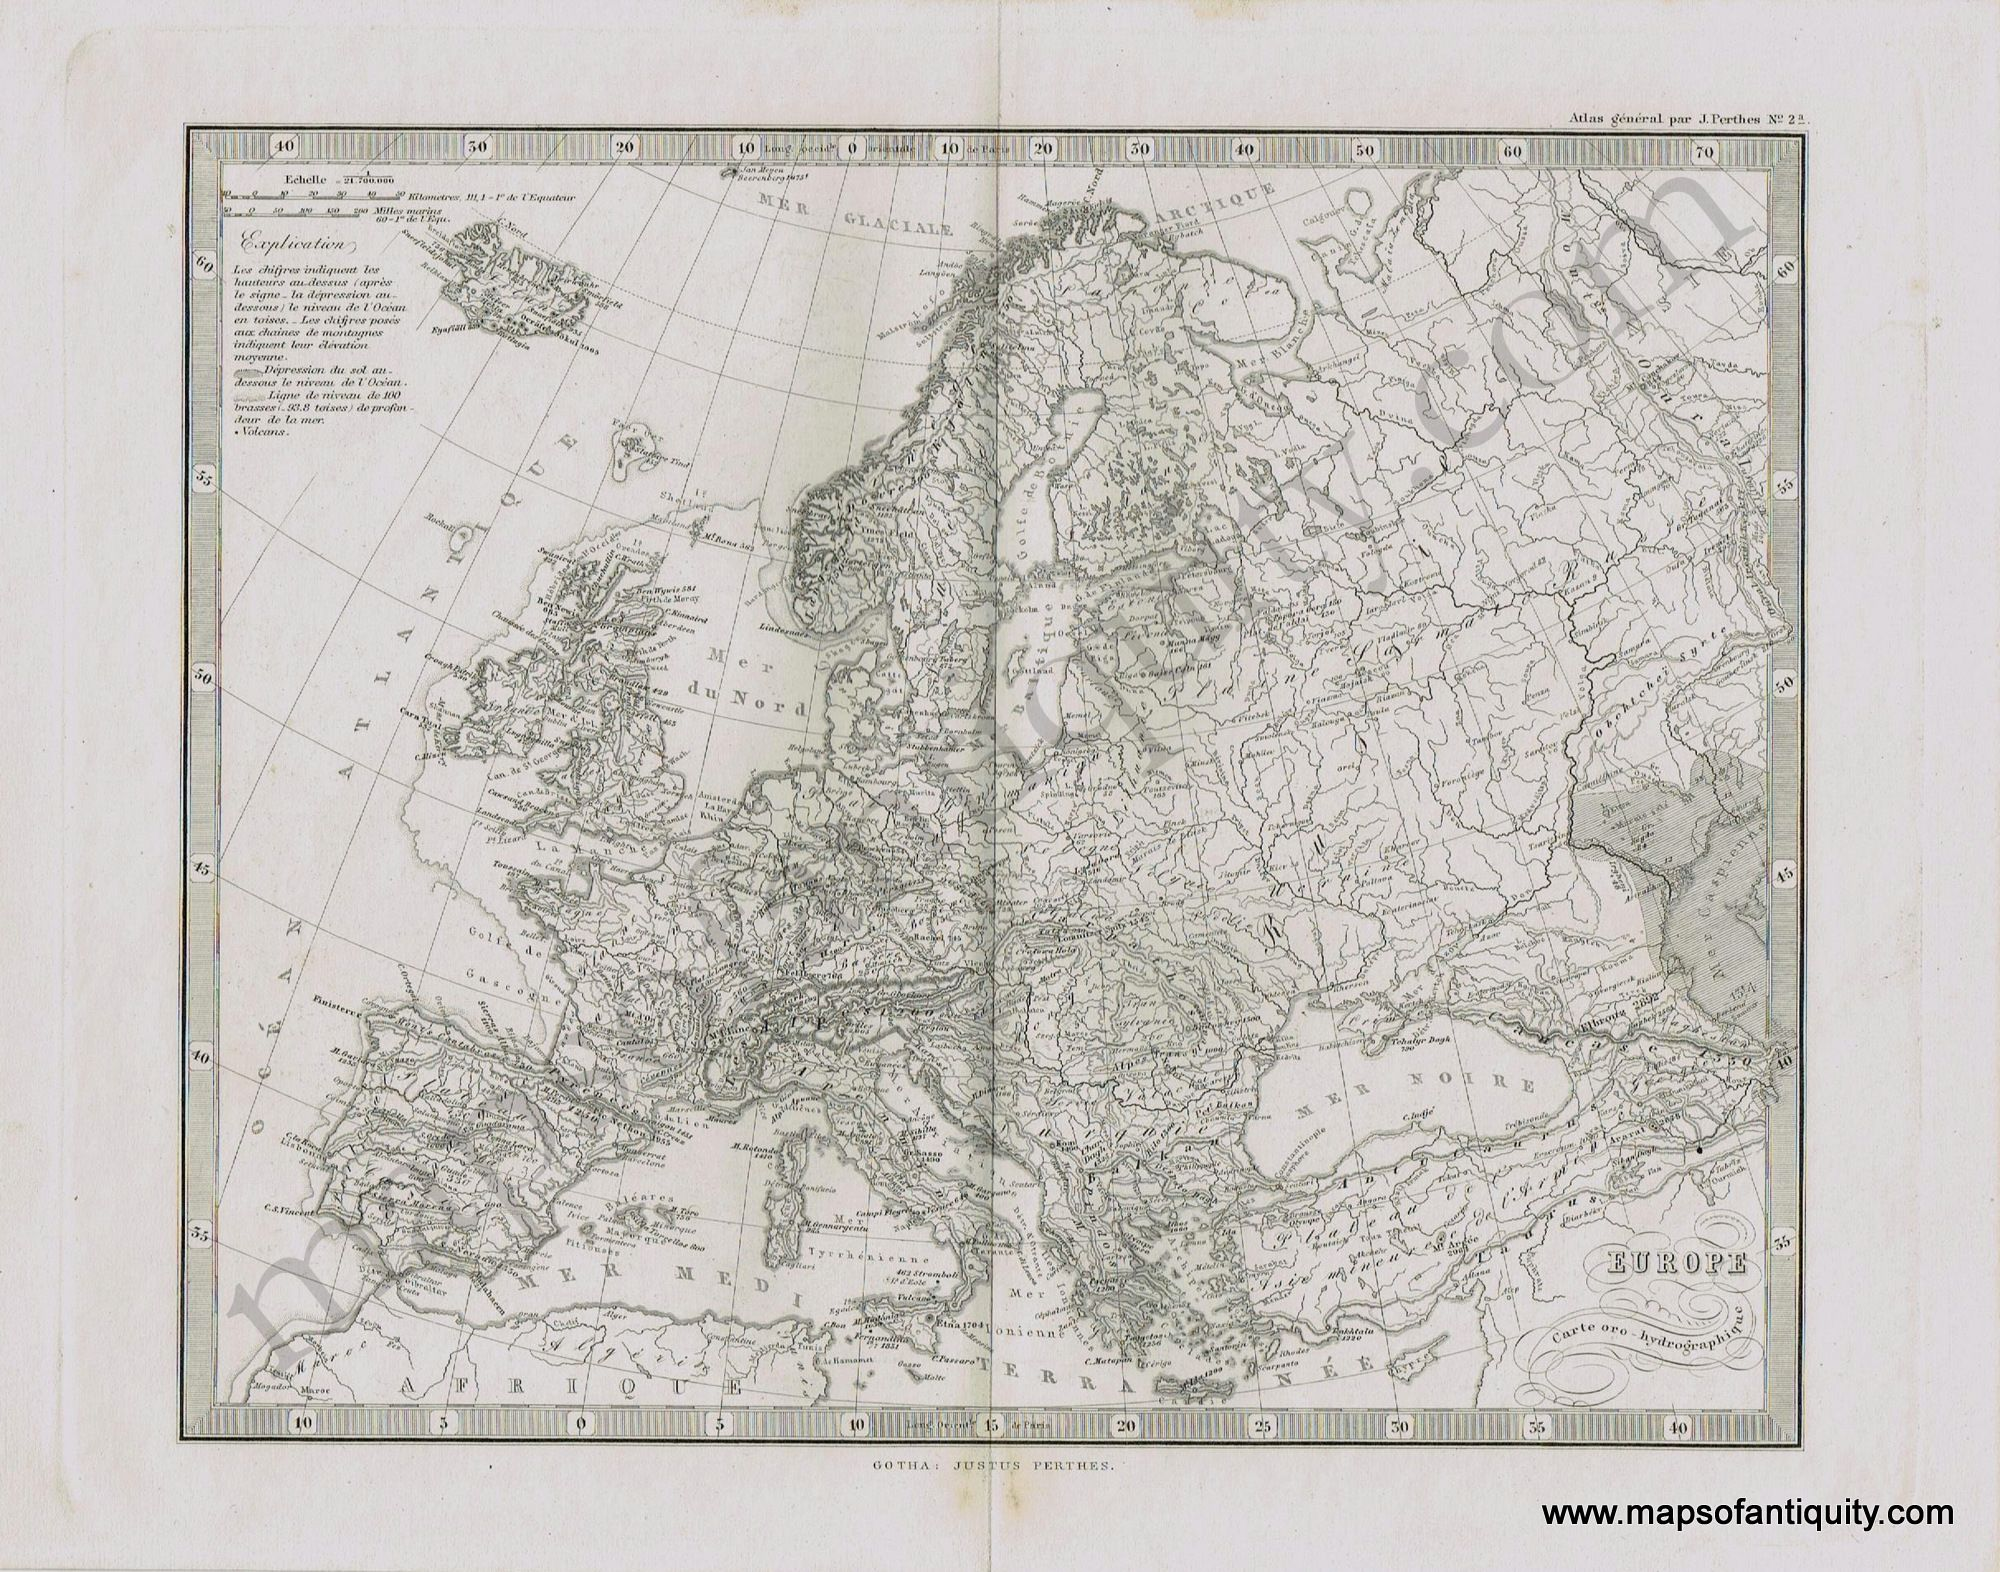 Carte Oro Hydrographique Chine.Europe Carte Oro Hydrographique Antique Maps And Charts